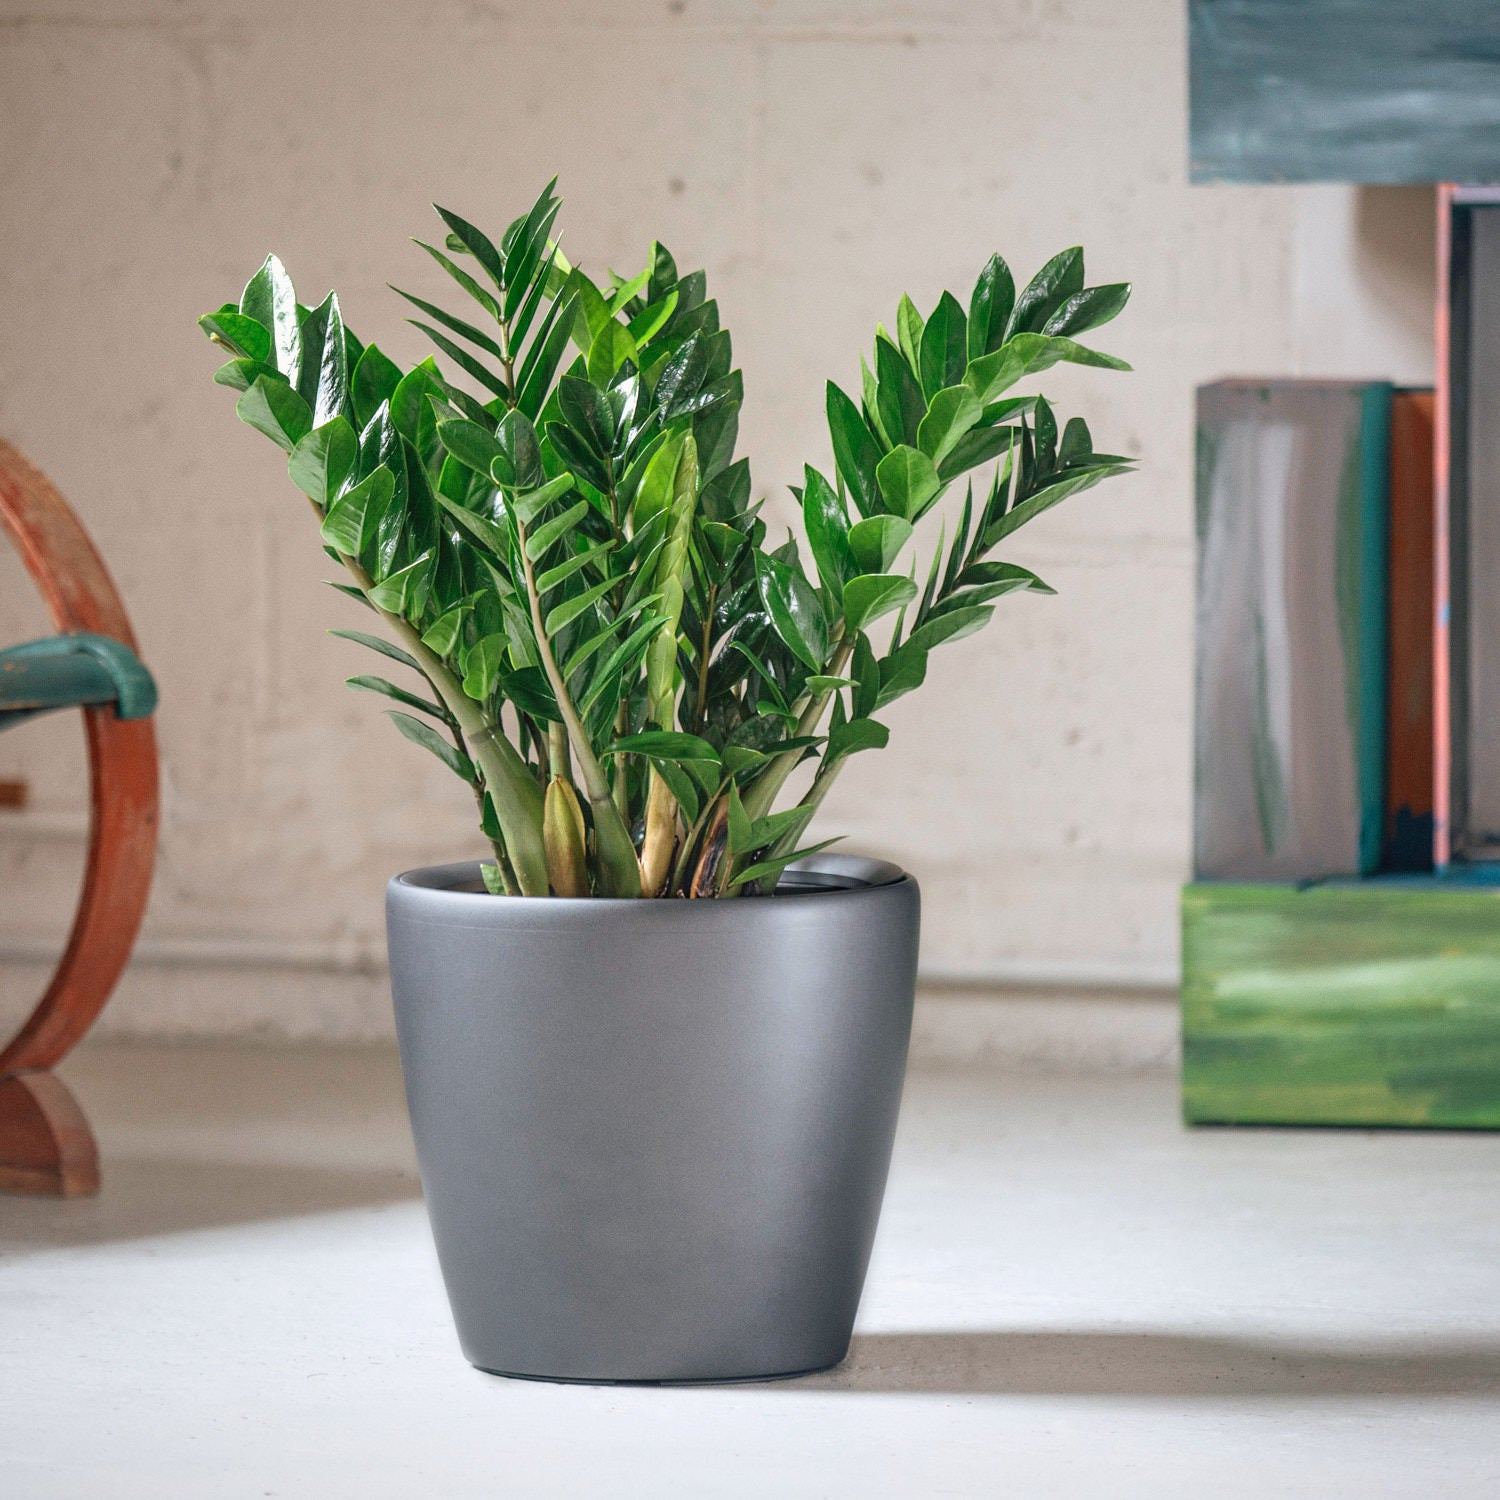 ZZ plant potted in Lechuza Classico charcoal metallic planter - My City Plants